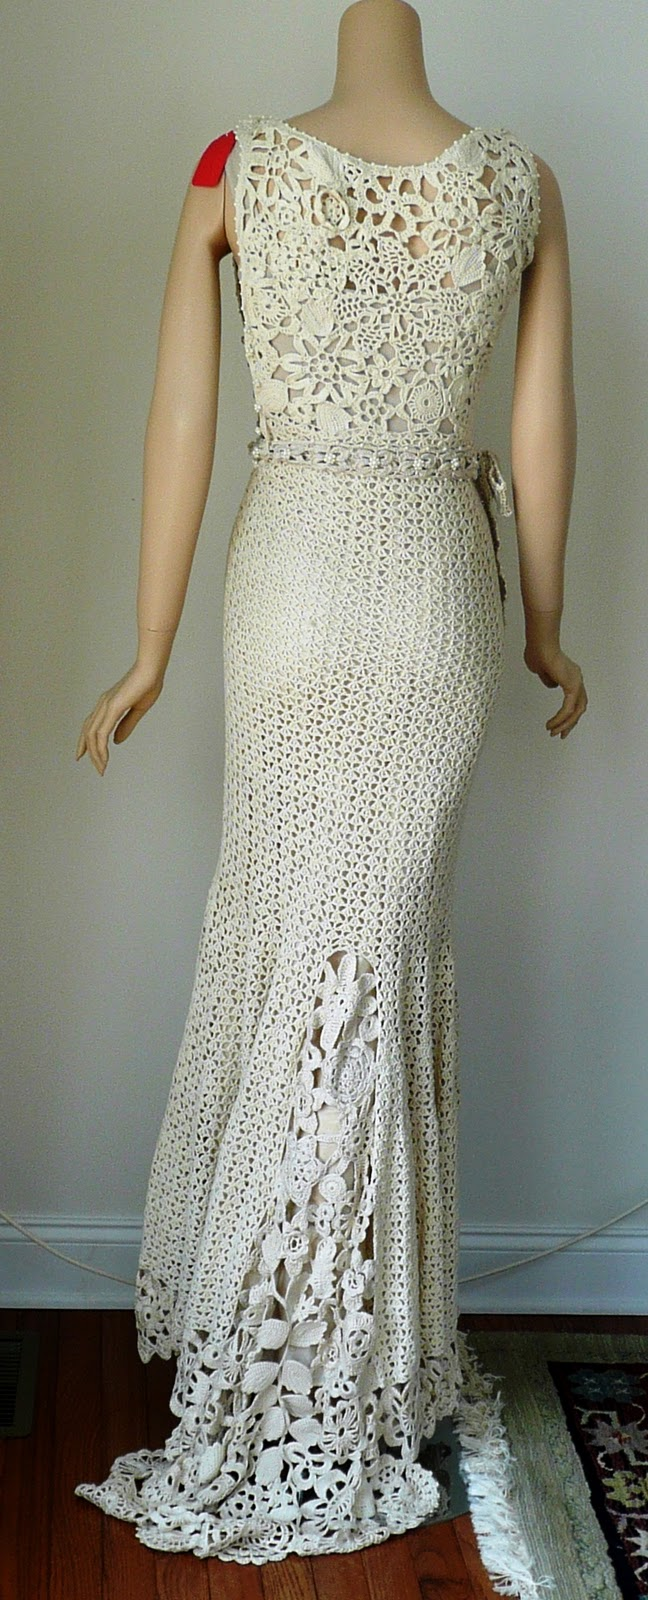 CROCHETED DRESS PATTERN WEDDING - Crochet and Knitting ...